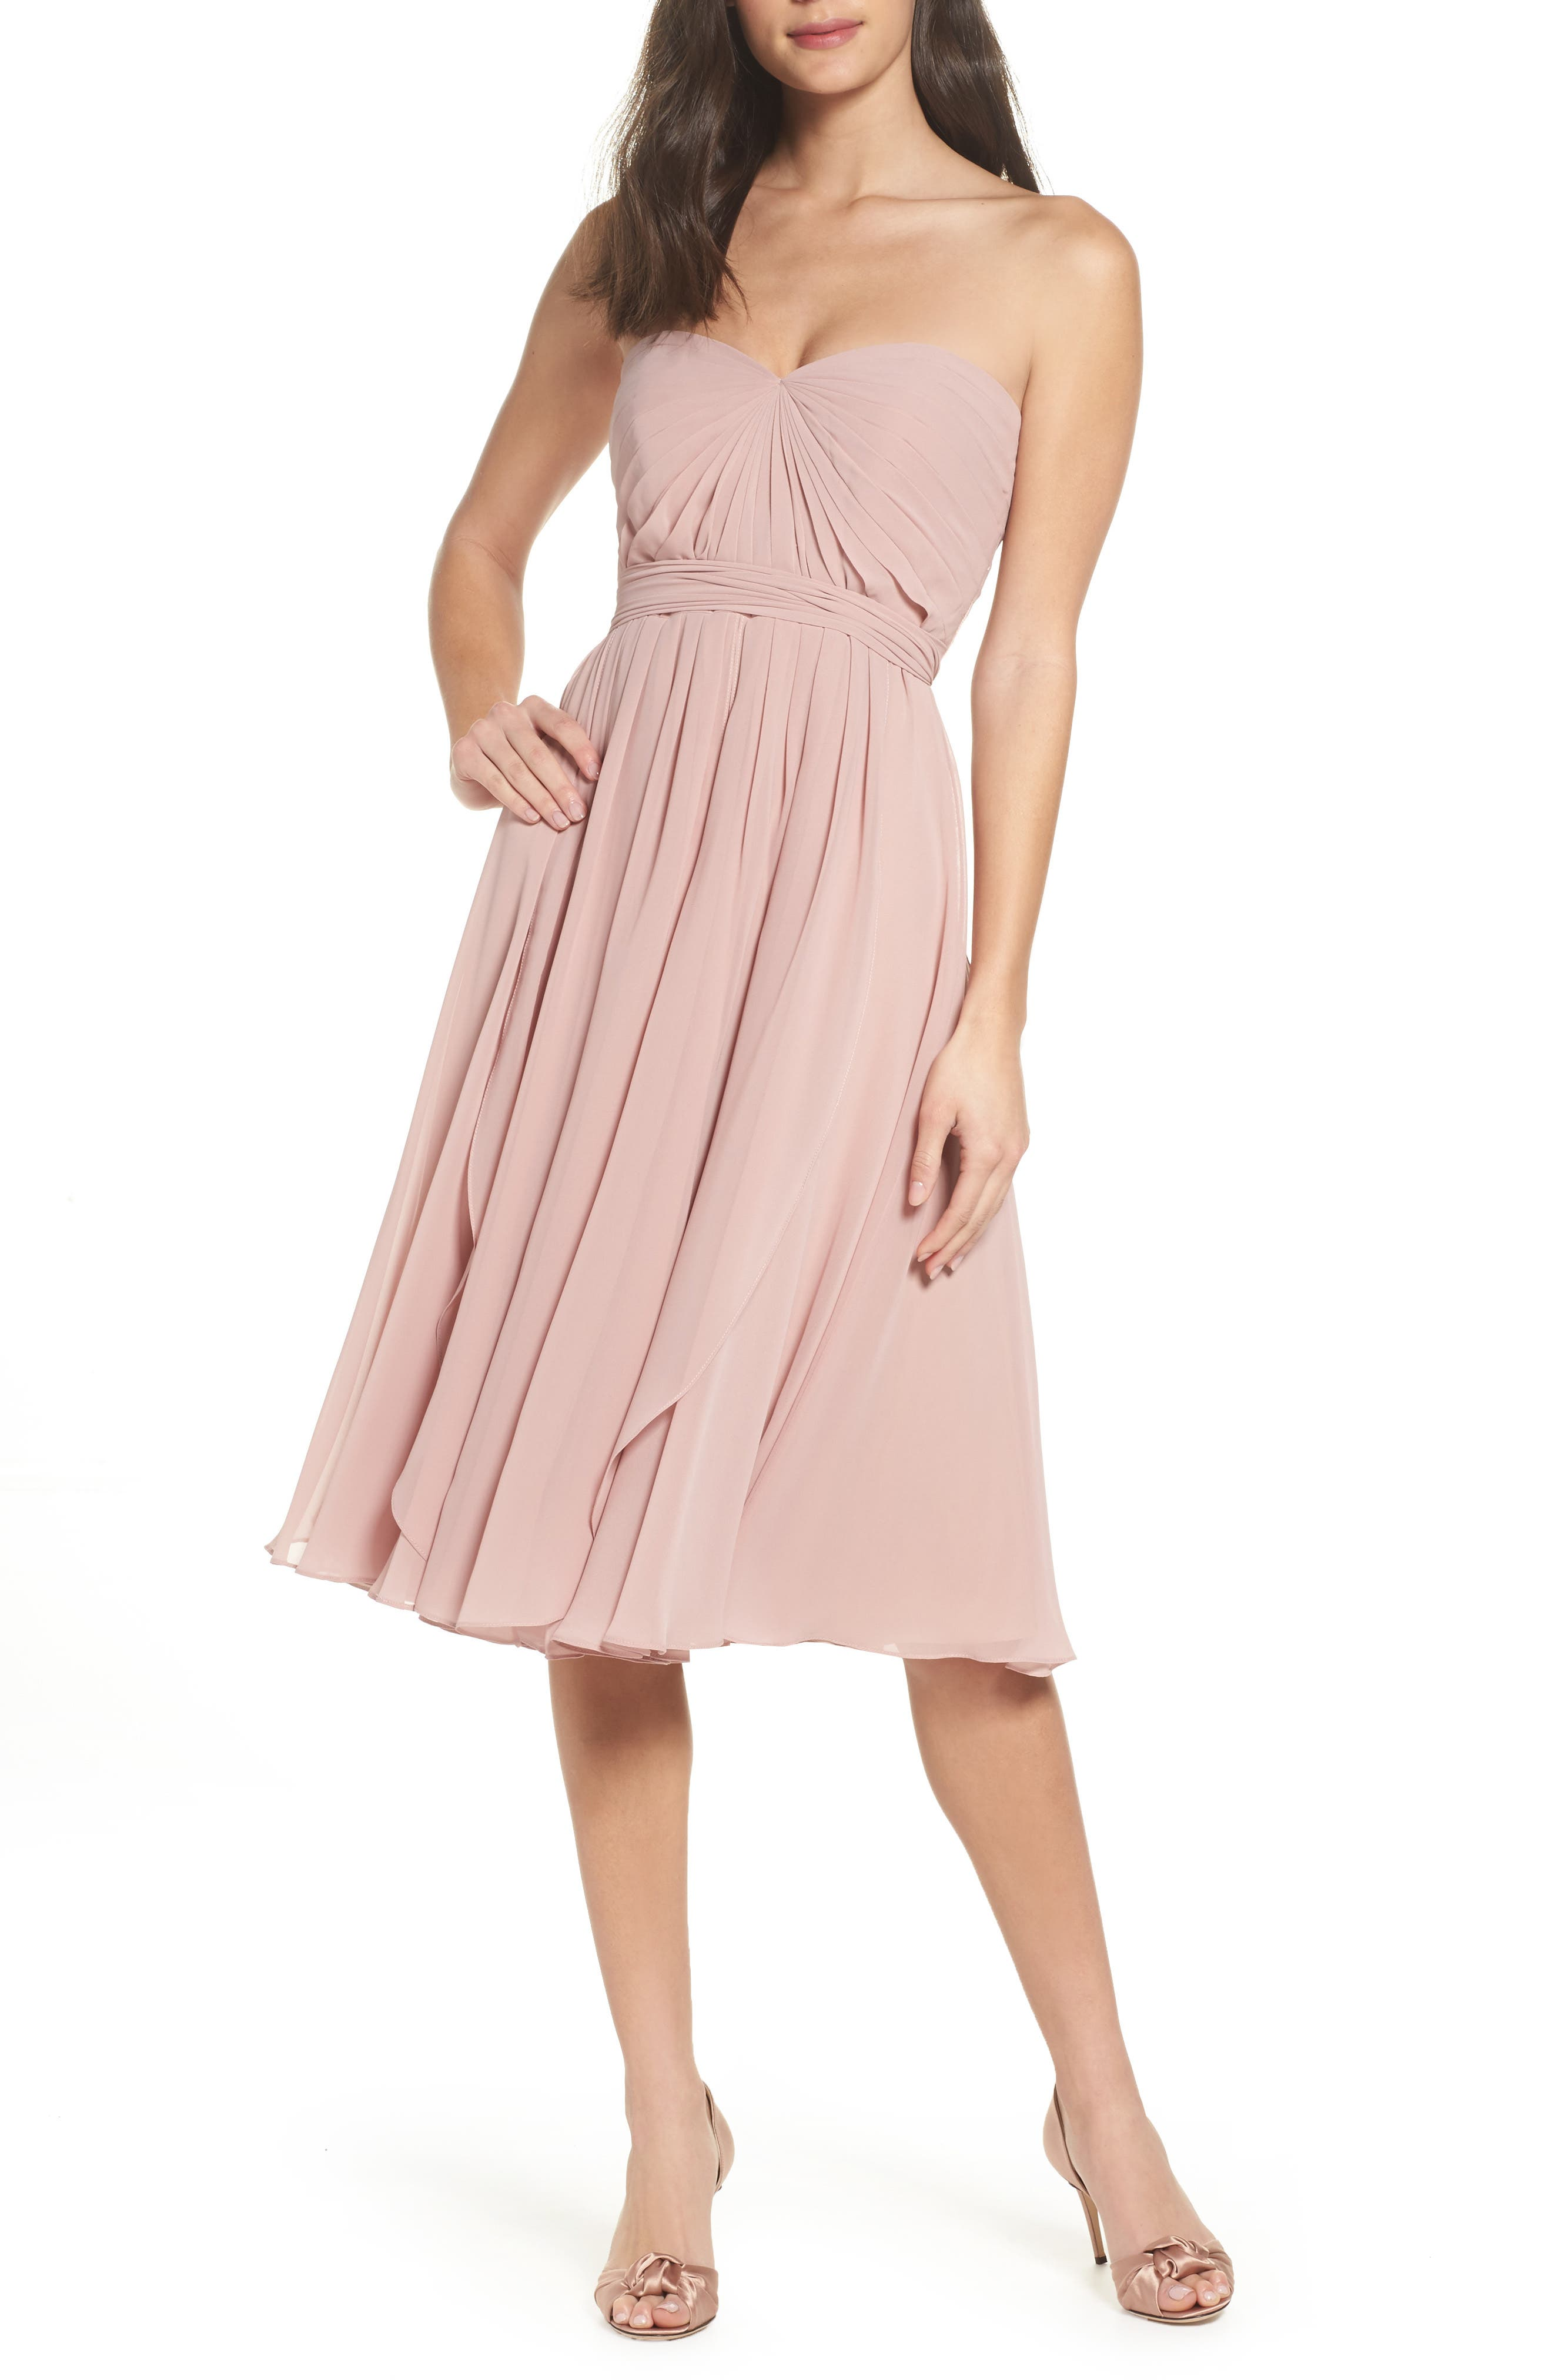 Emmie Convertible Chiffon Tea-Length Dress,                         Main,                         color, Whipped Apricot